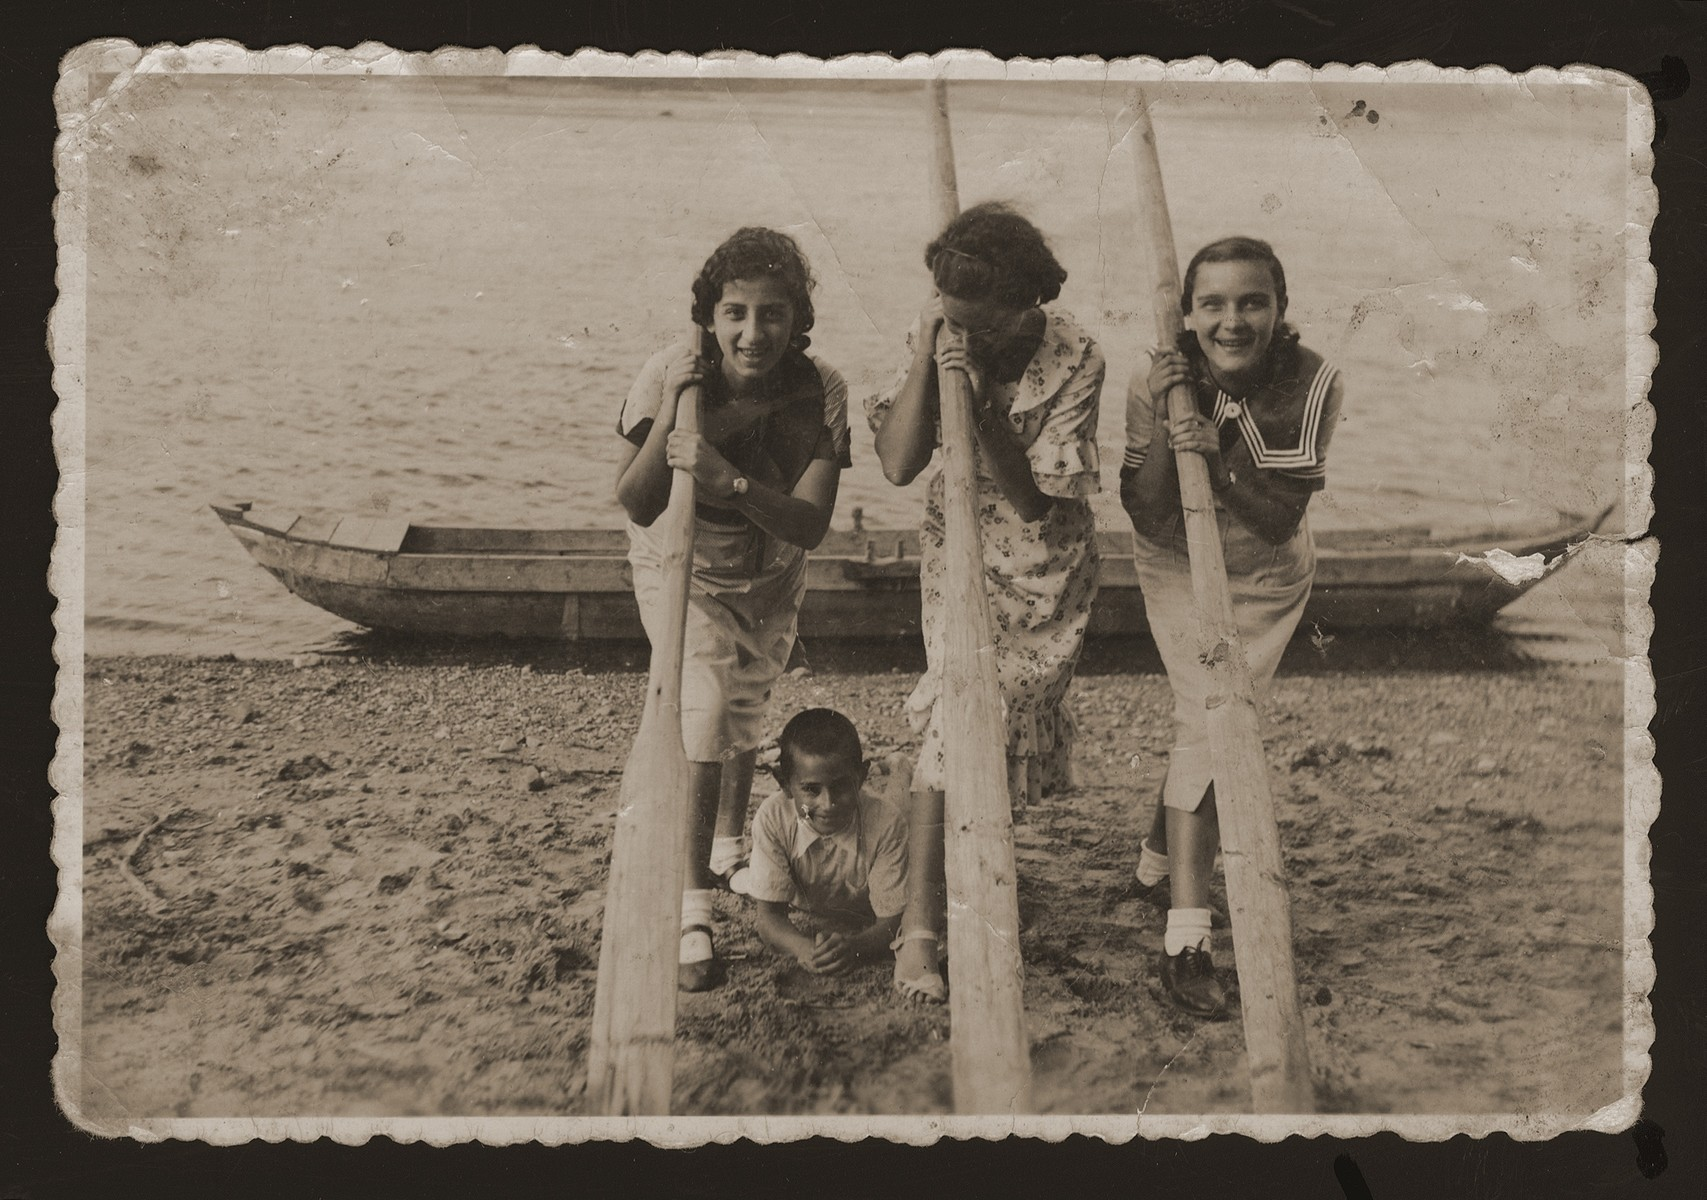 Three Jewish friends pose with paddles on the banks of the Nemunas River in the village of Kacergine, near Kaunas.    Pictured from left to right are: unknown, Dita Katz and Celia Rom.  Beneath them is Zvi Katz, Dita's brother.  Neither of Dita's companions survived the war.